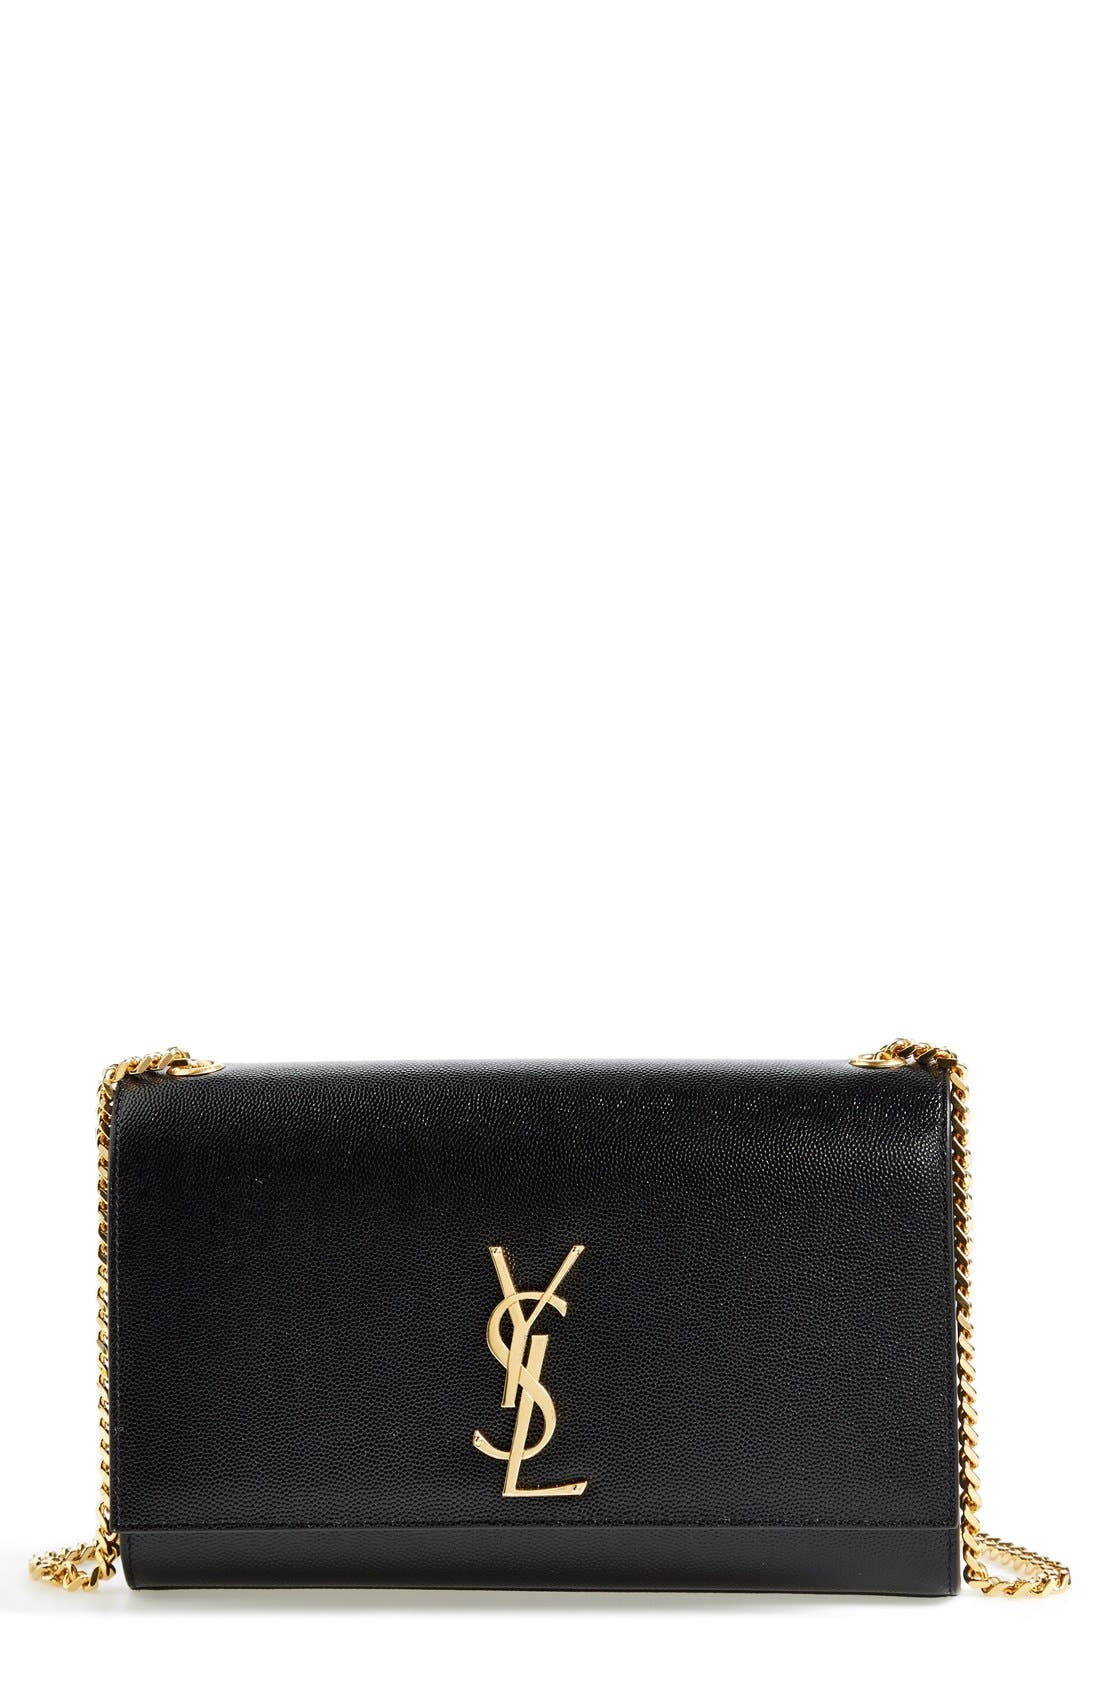 'Medium Kate' Leather Chain Shoulder Bag,                         Main,                         color, Noir